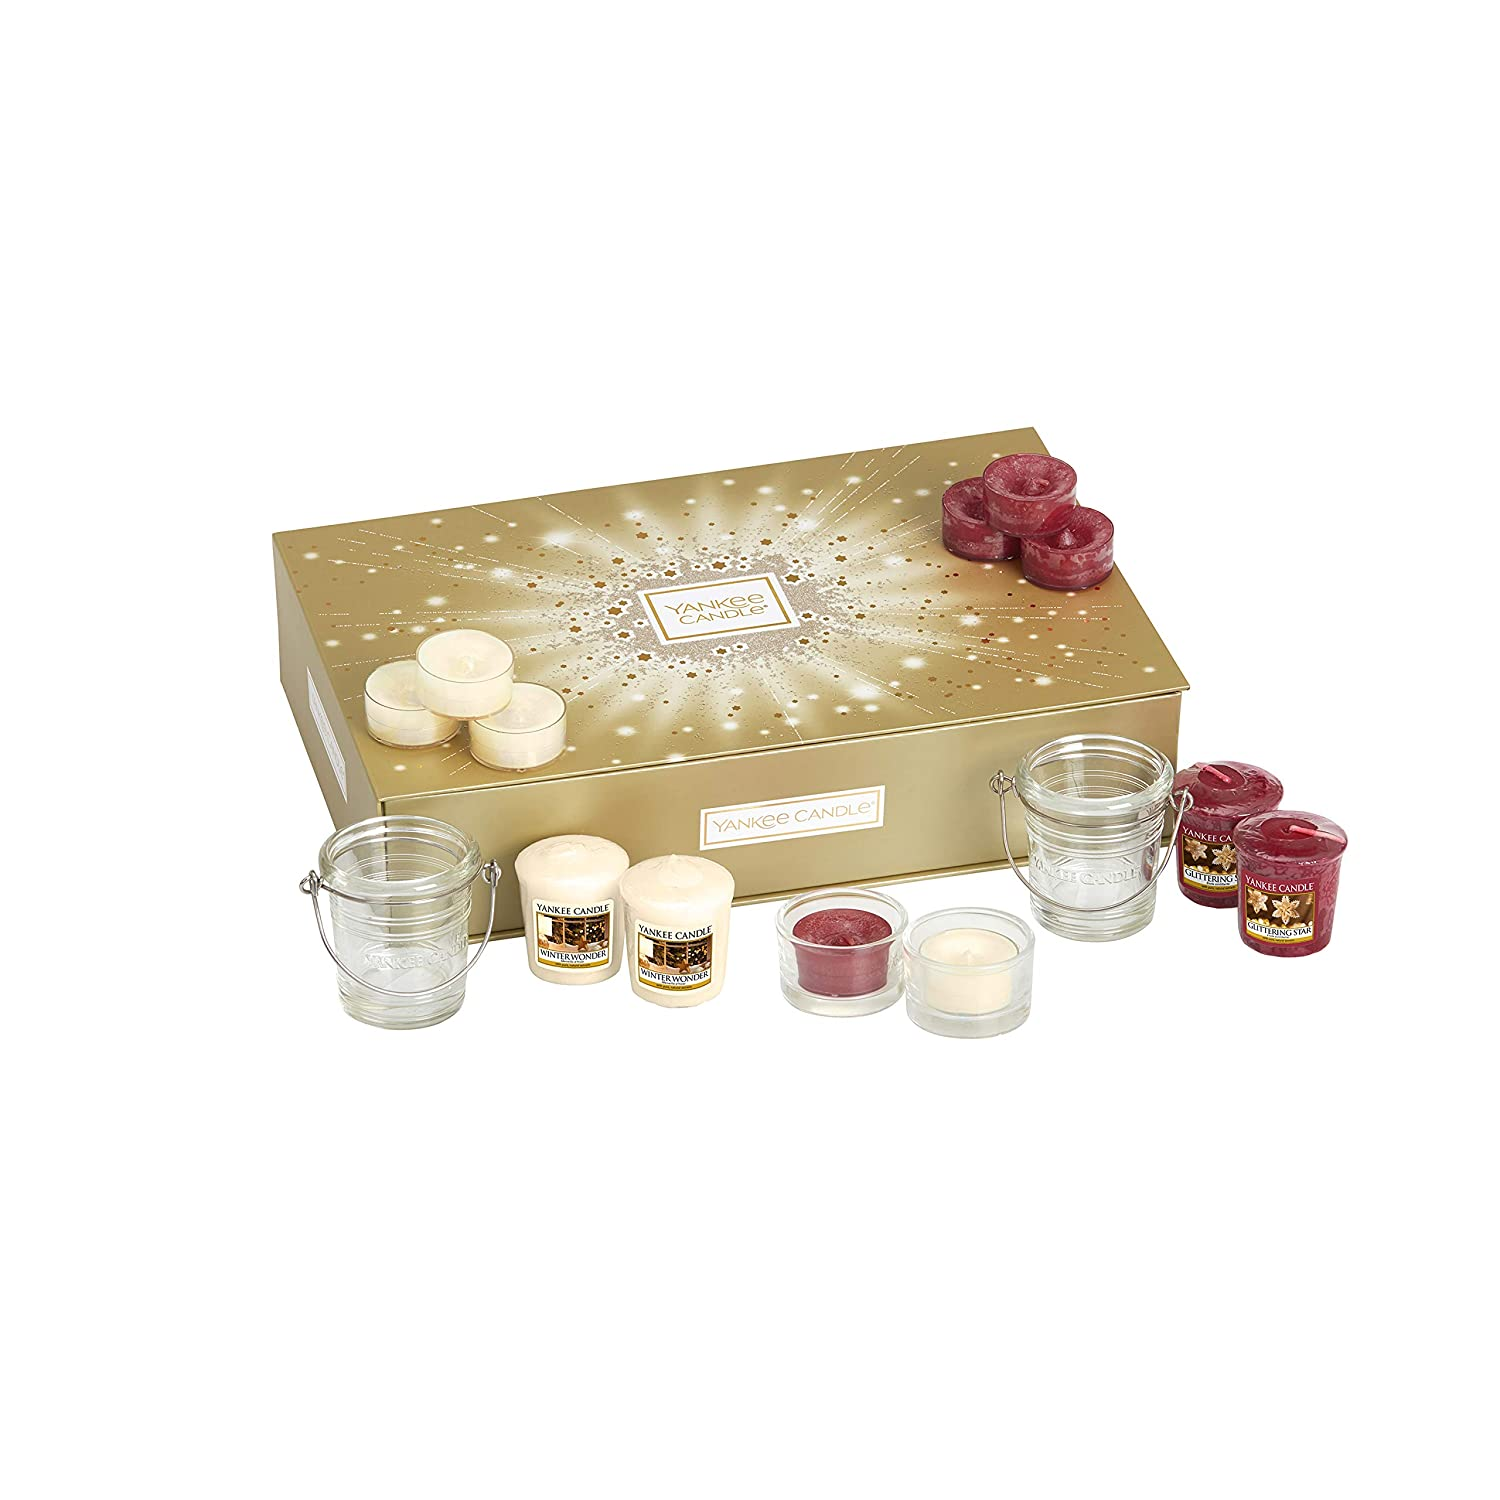 Yankee Candle Tablescaping Gift Set Medium Amazoncouk Kitchen Home